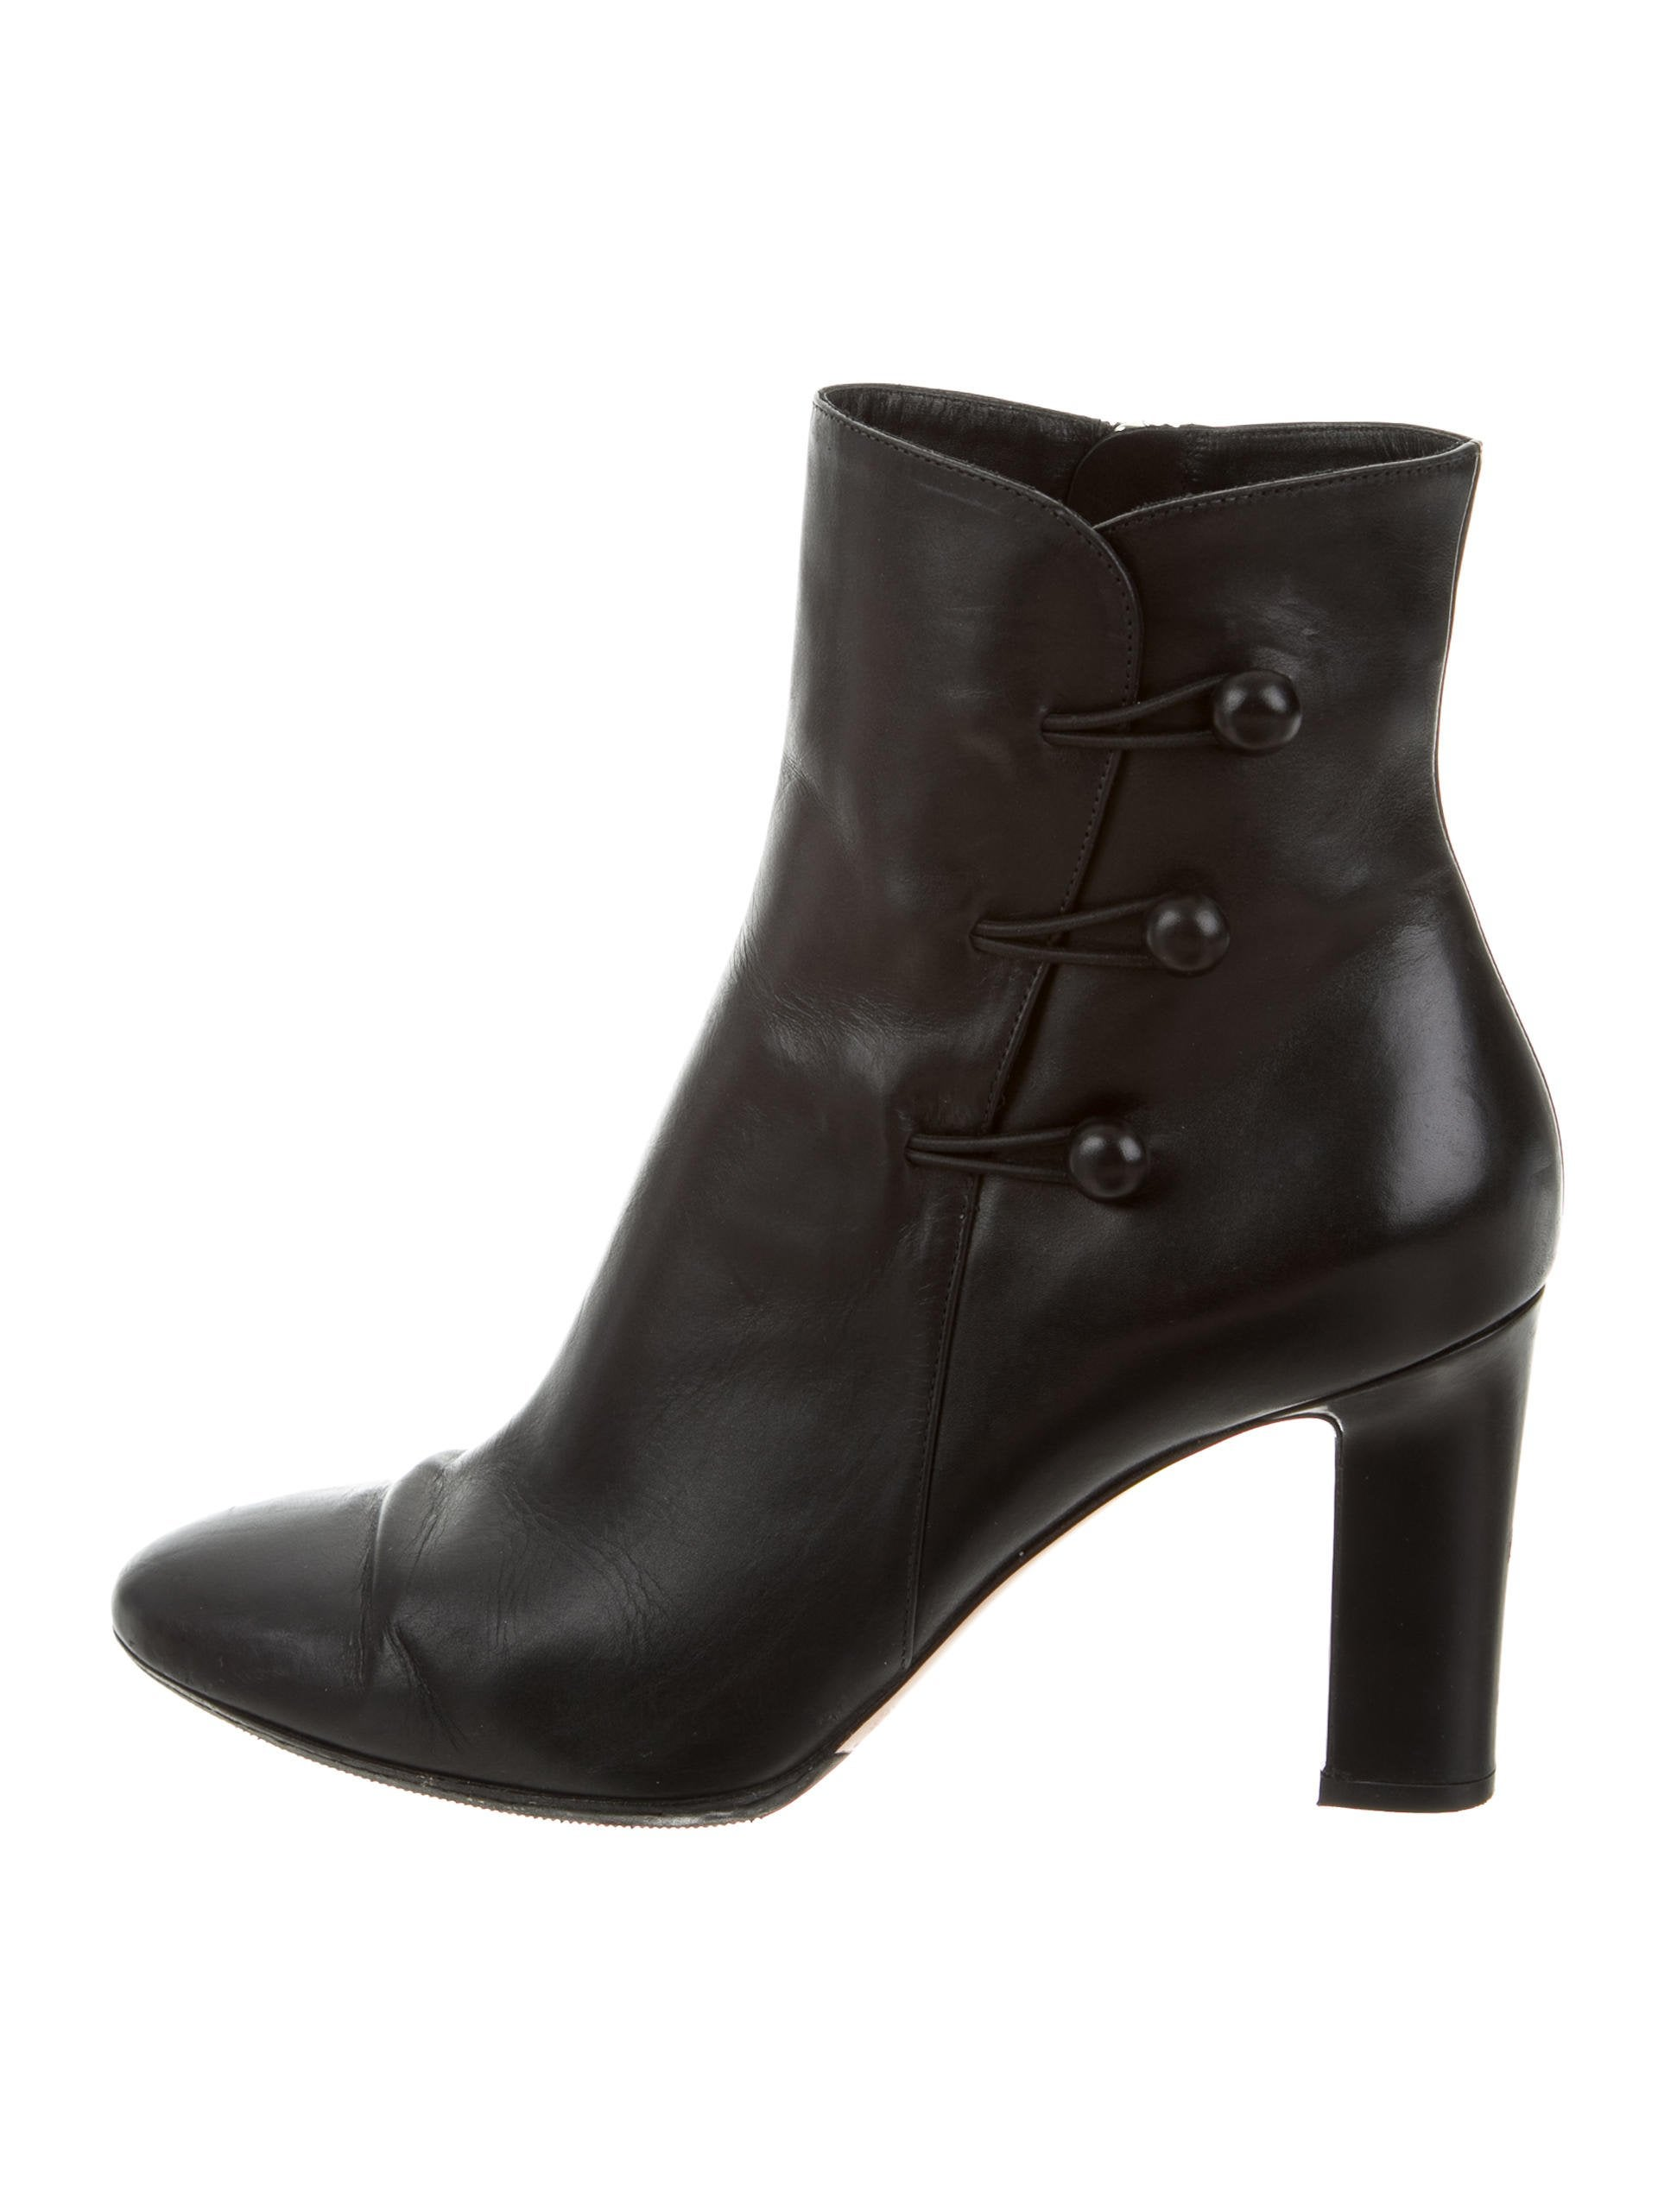 gianvito rossi leather ankle boots shoes git23482 the realreal. Black Bedroom Furniture Sets. Home Design Ideas